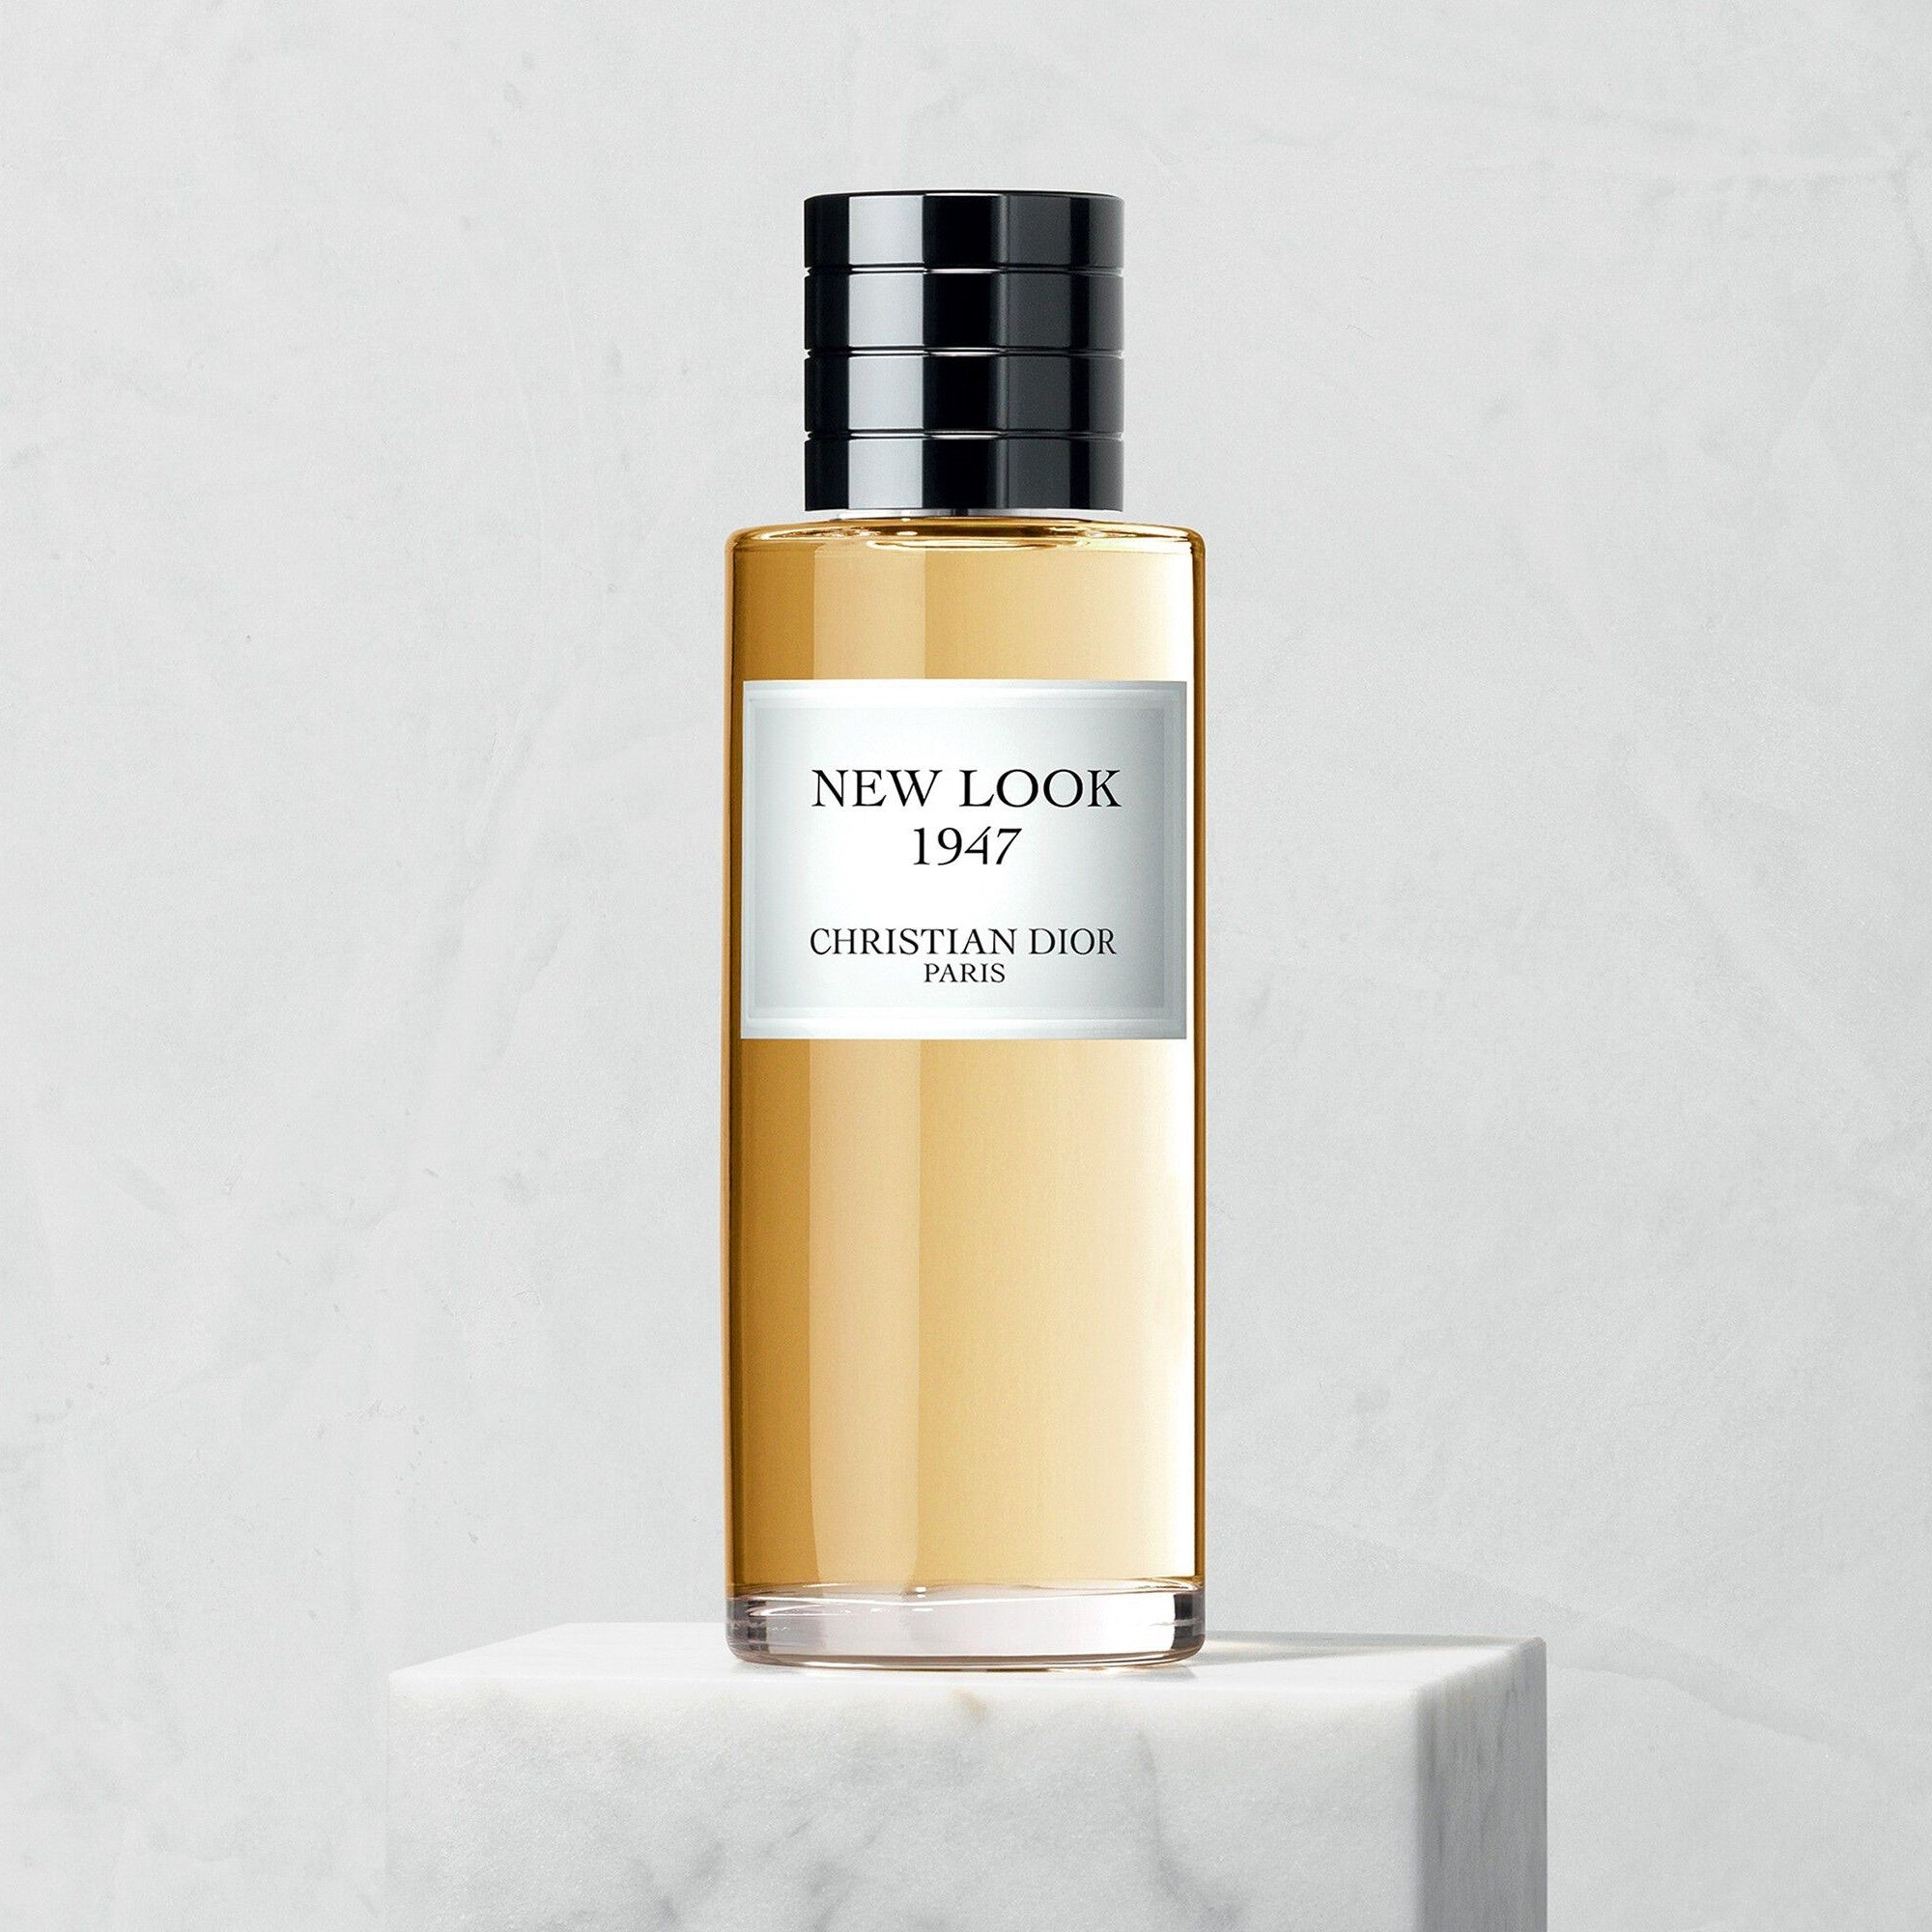 NEW LOOK 1947 | Fragrance